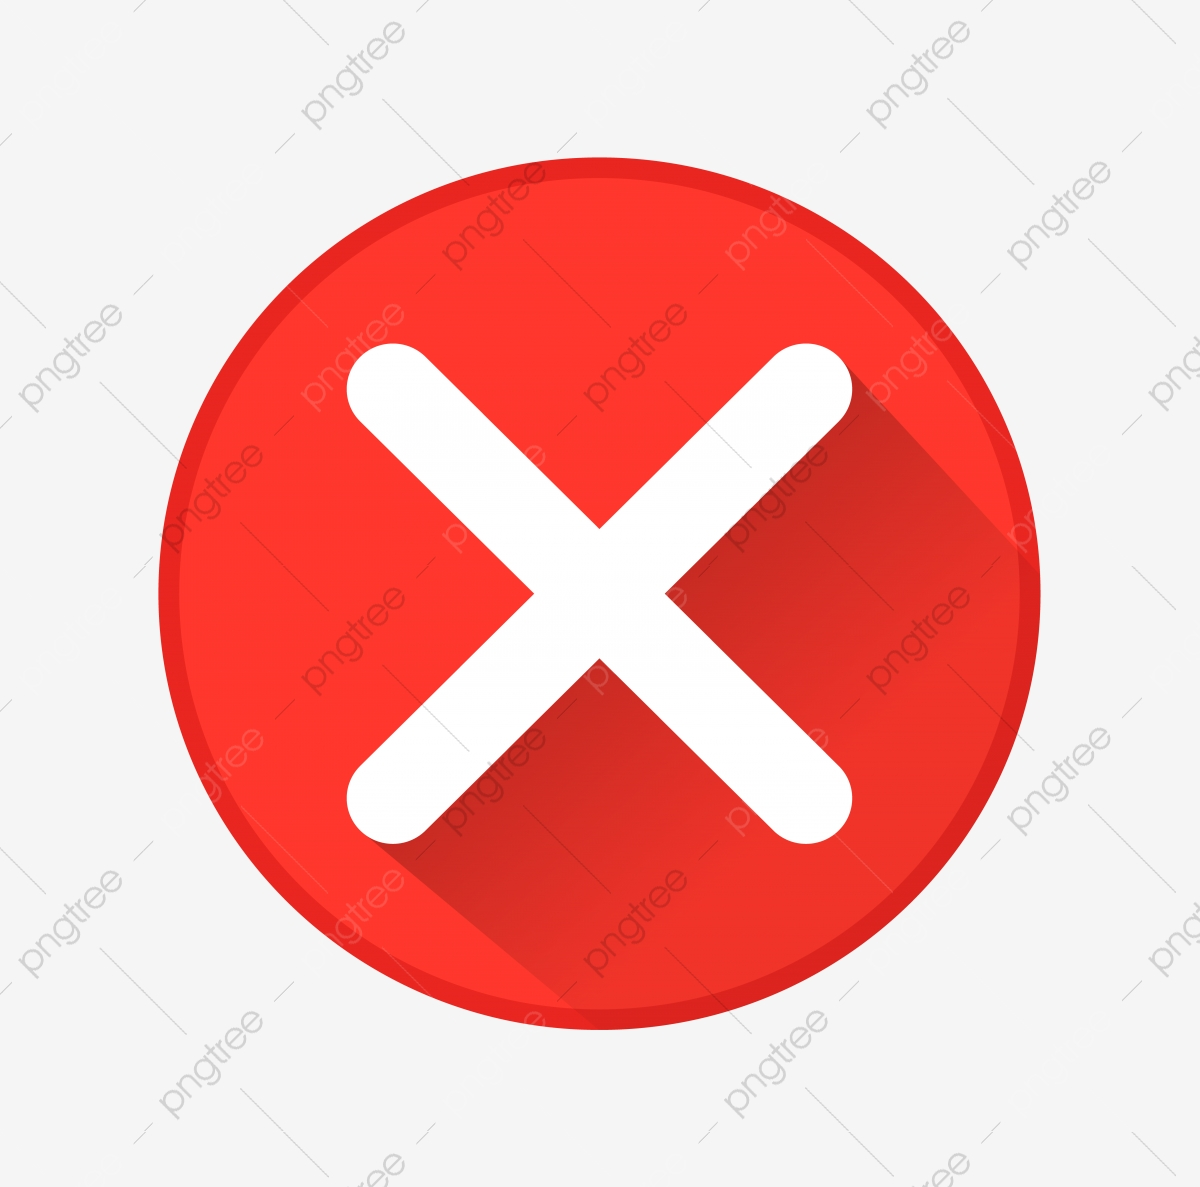 accept image png jpg true and false symbols accept rejected for evaluation vector